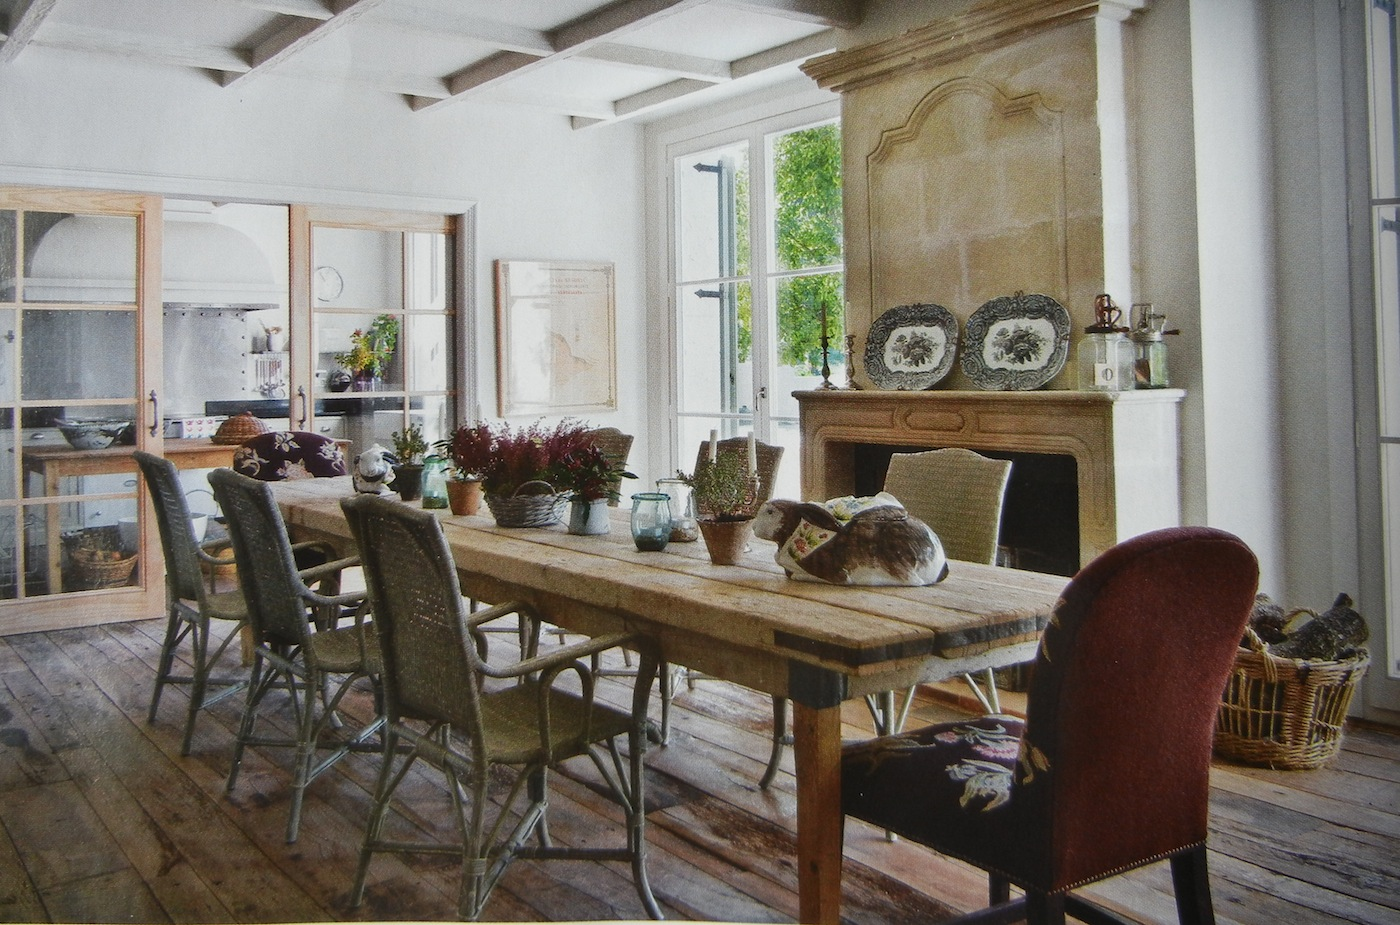 Auction Decorating Rustic Dining Tables In Spain